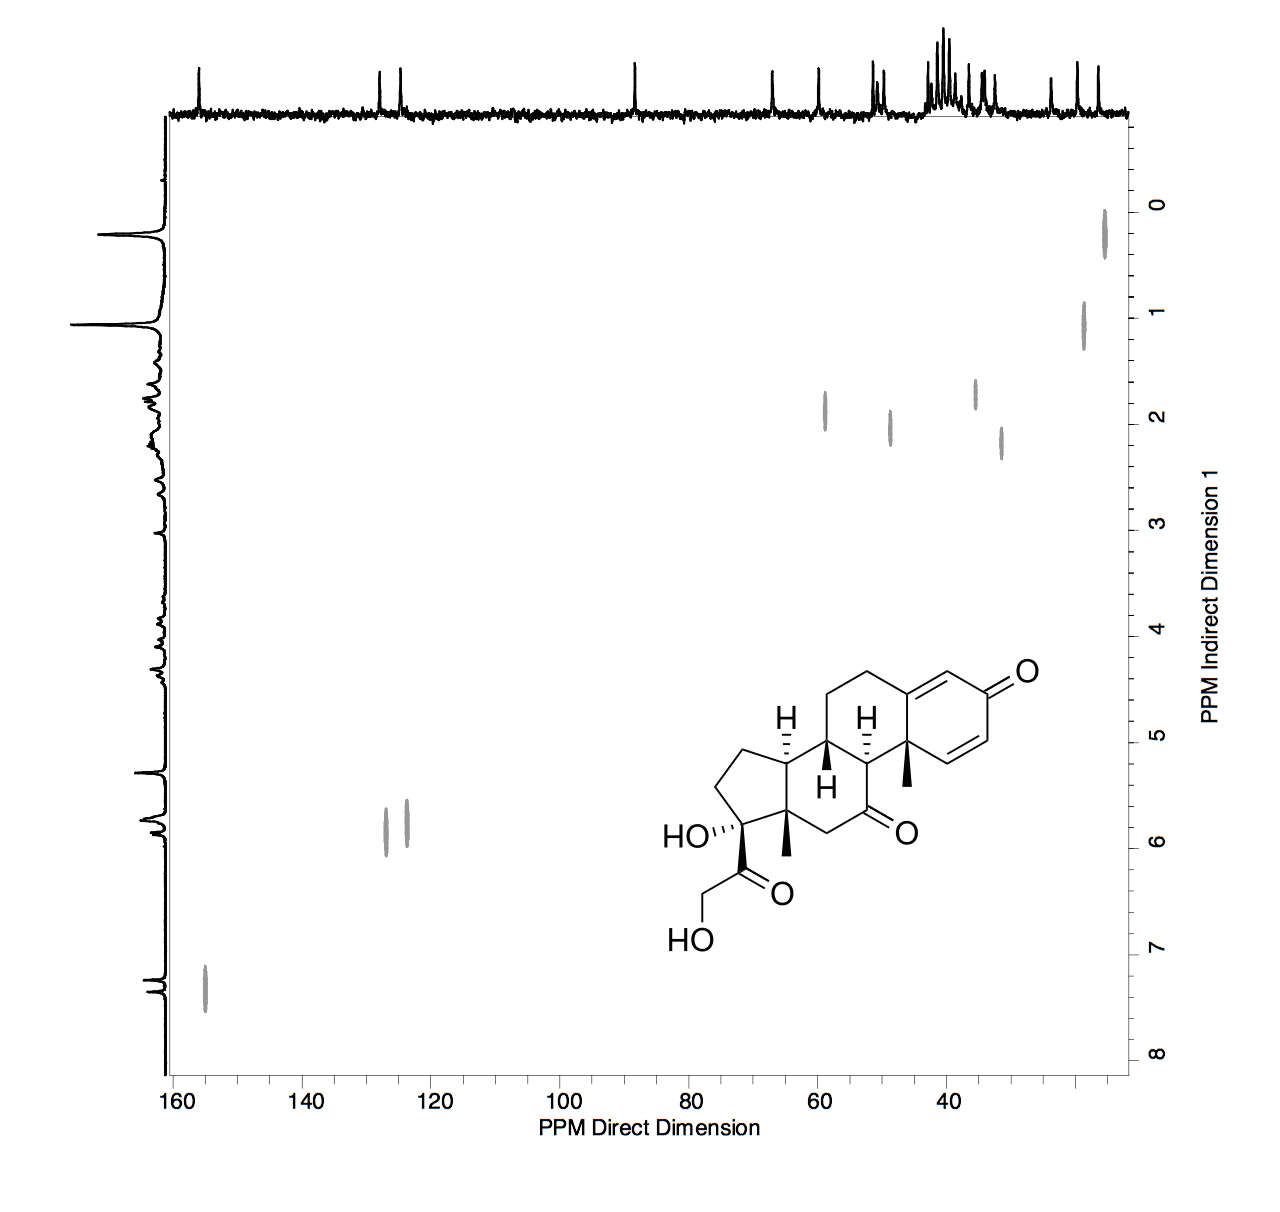 Anasazi Instruments HETCOR - 2D spectrum with molecular structure graph